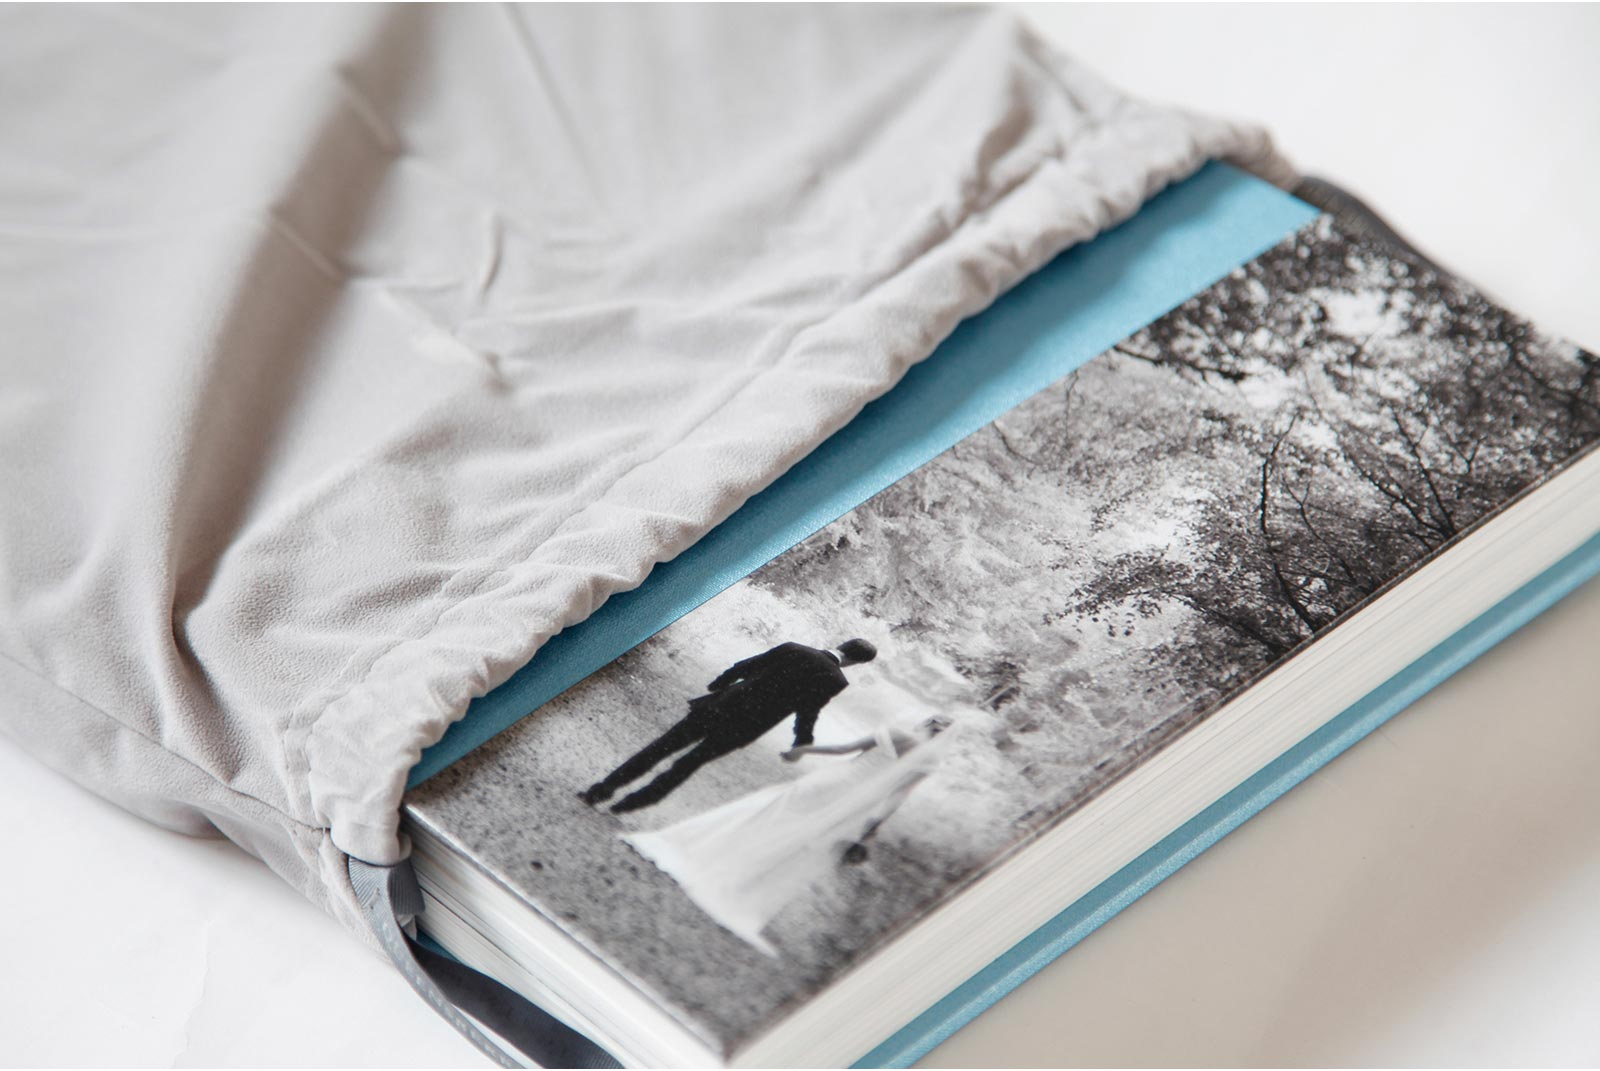 Queensberry wedding album in baby blue classic library buckram with a quarter page photograph on the cover